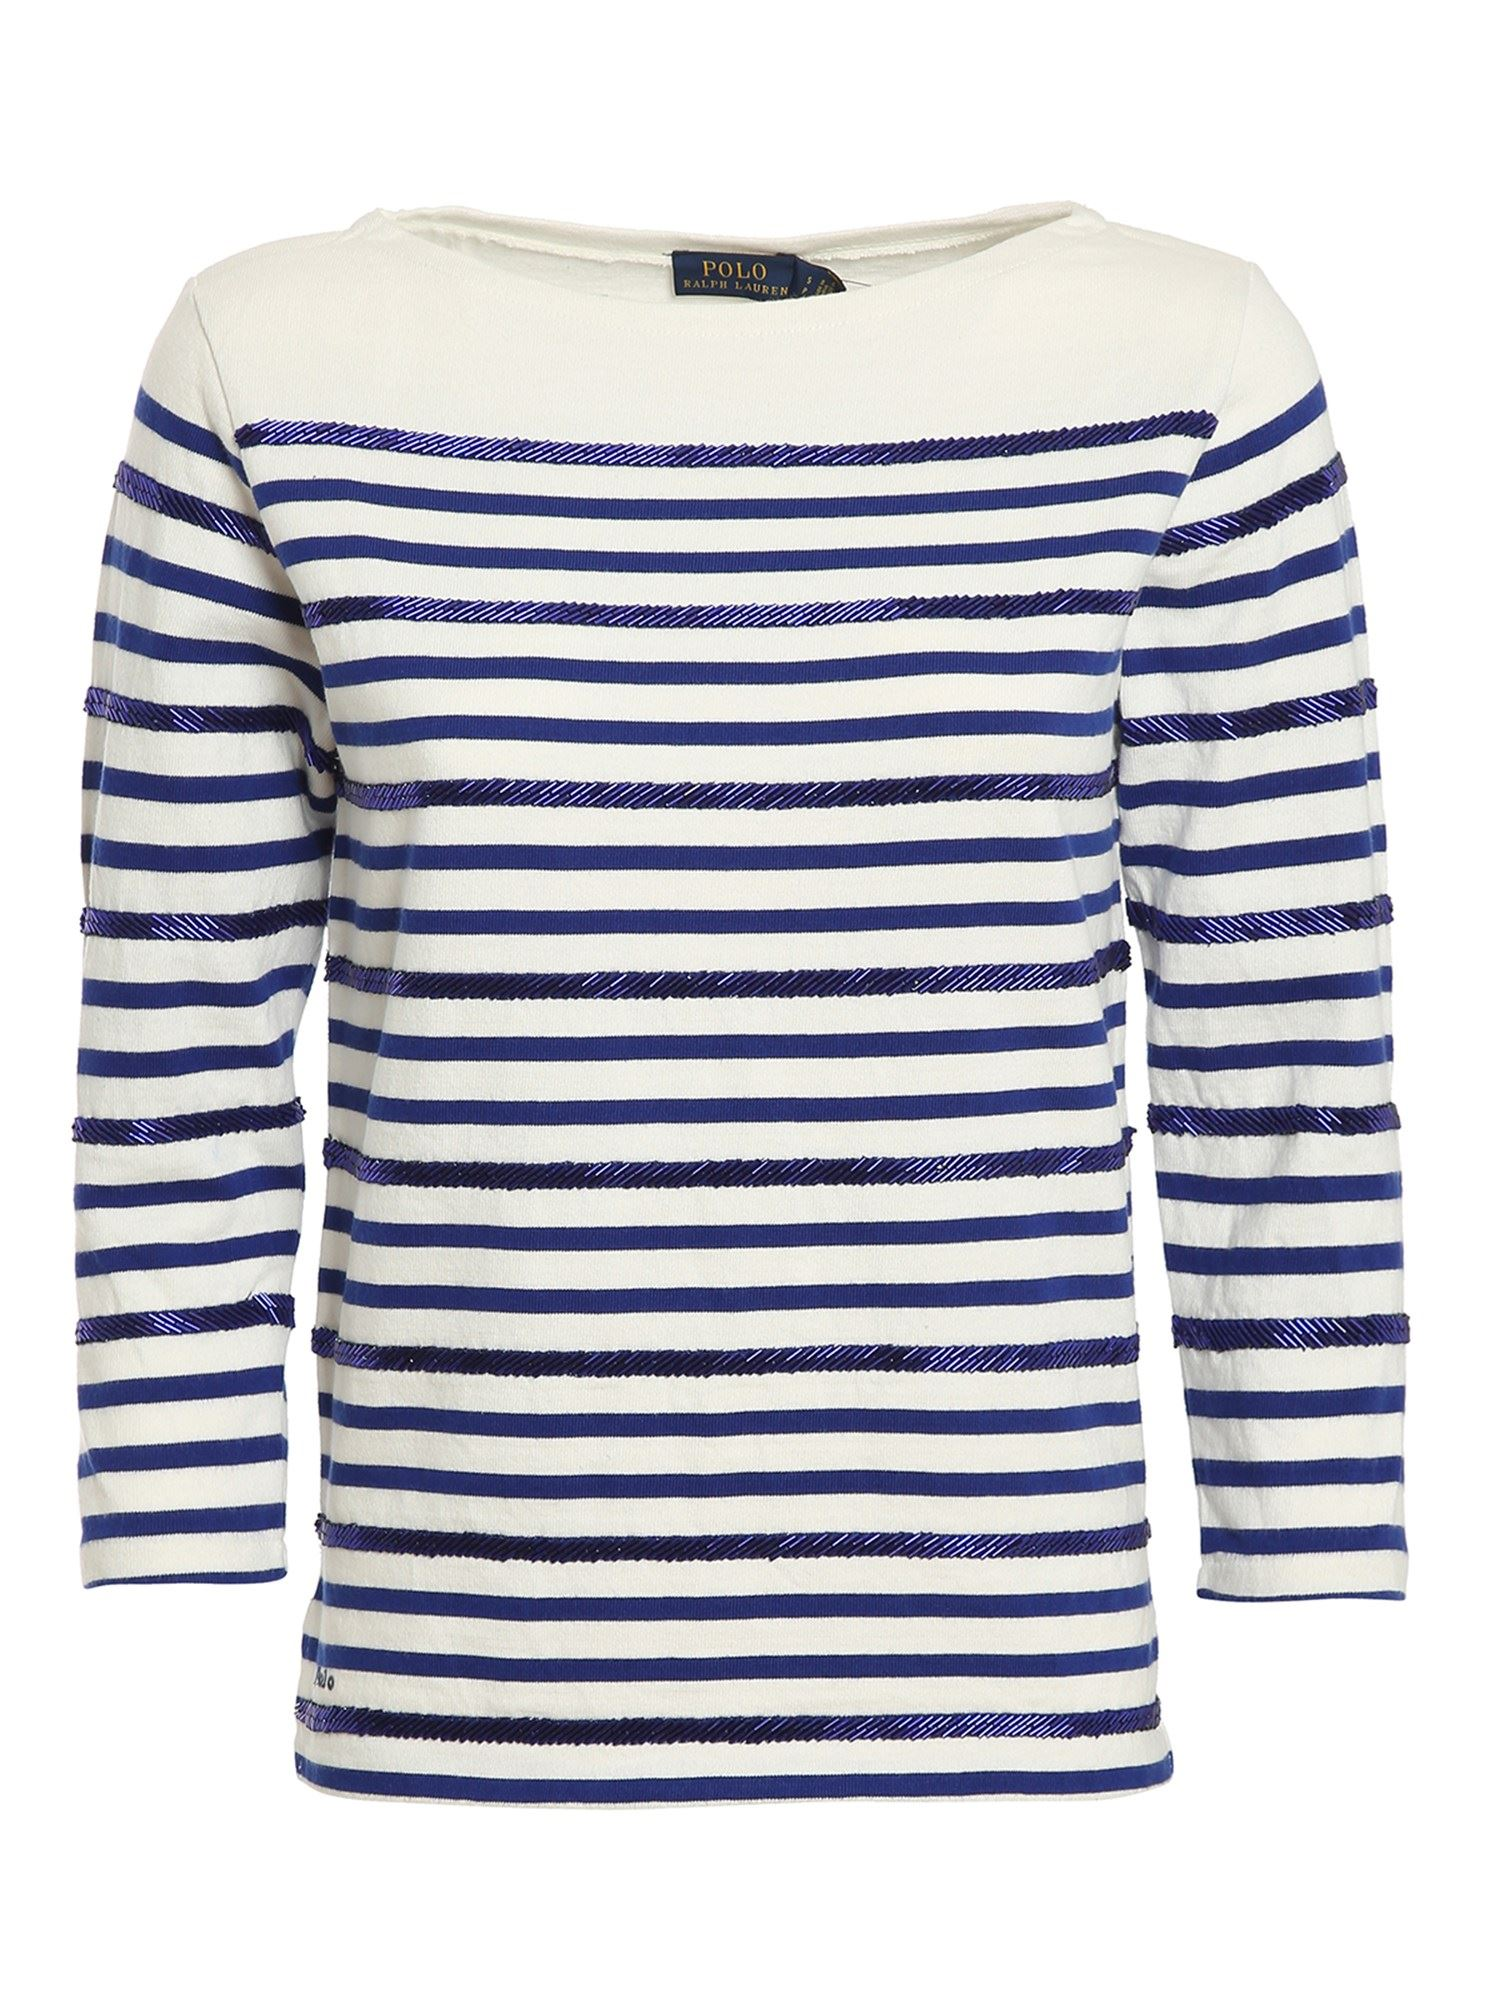 Polo Ralph Lauren Cottons POLO RALPH LAUREN EMBELLISHED STRIPED JUMPER IN WHITE AND BLUE